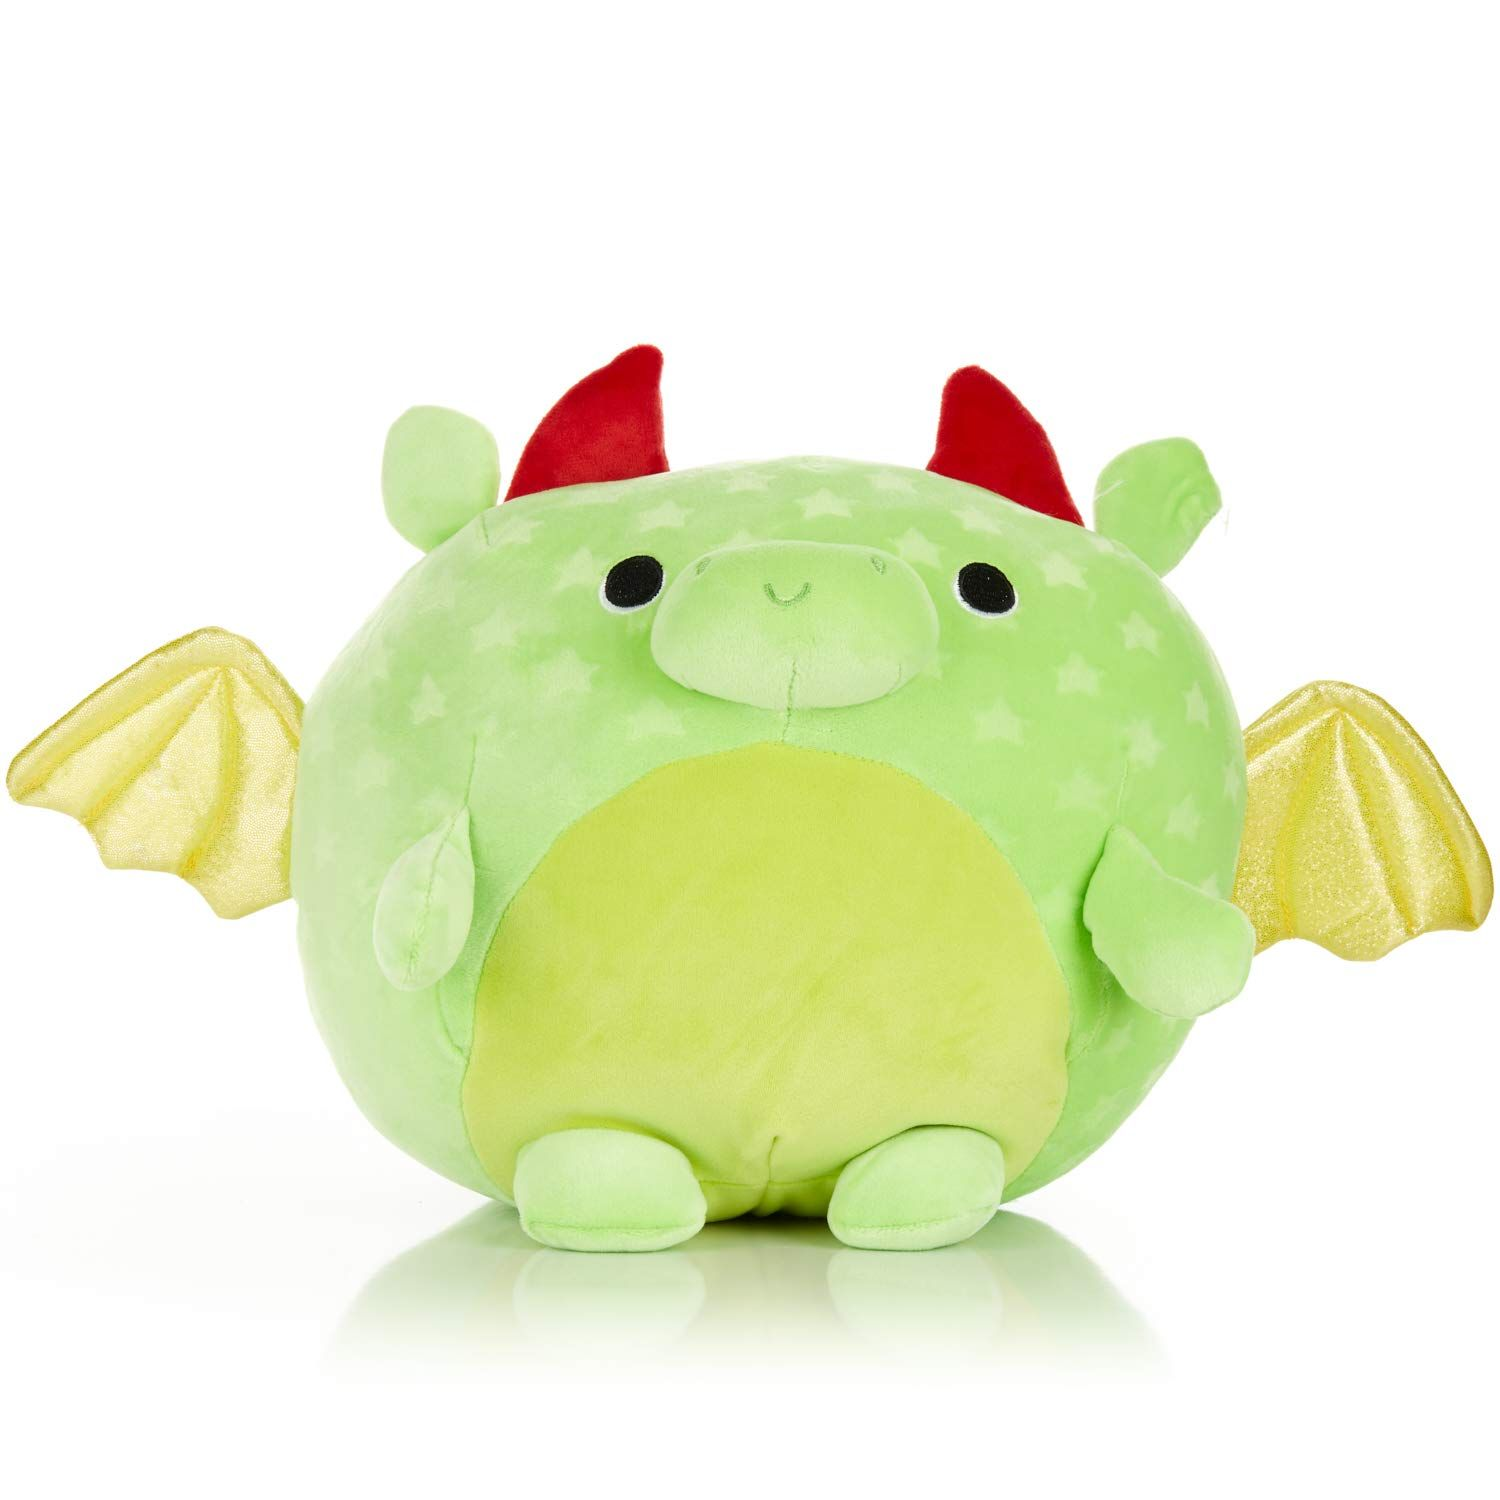 Toys and Co. | Kiwi the Dragon Cuddle Pal Round 11.5 inch ...